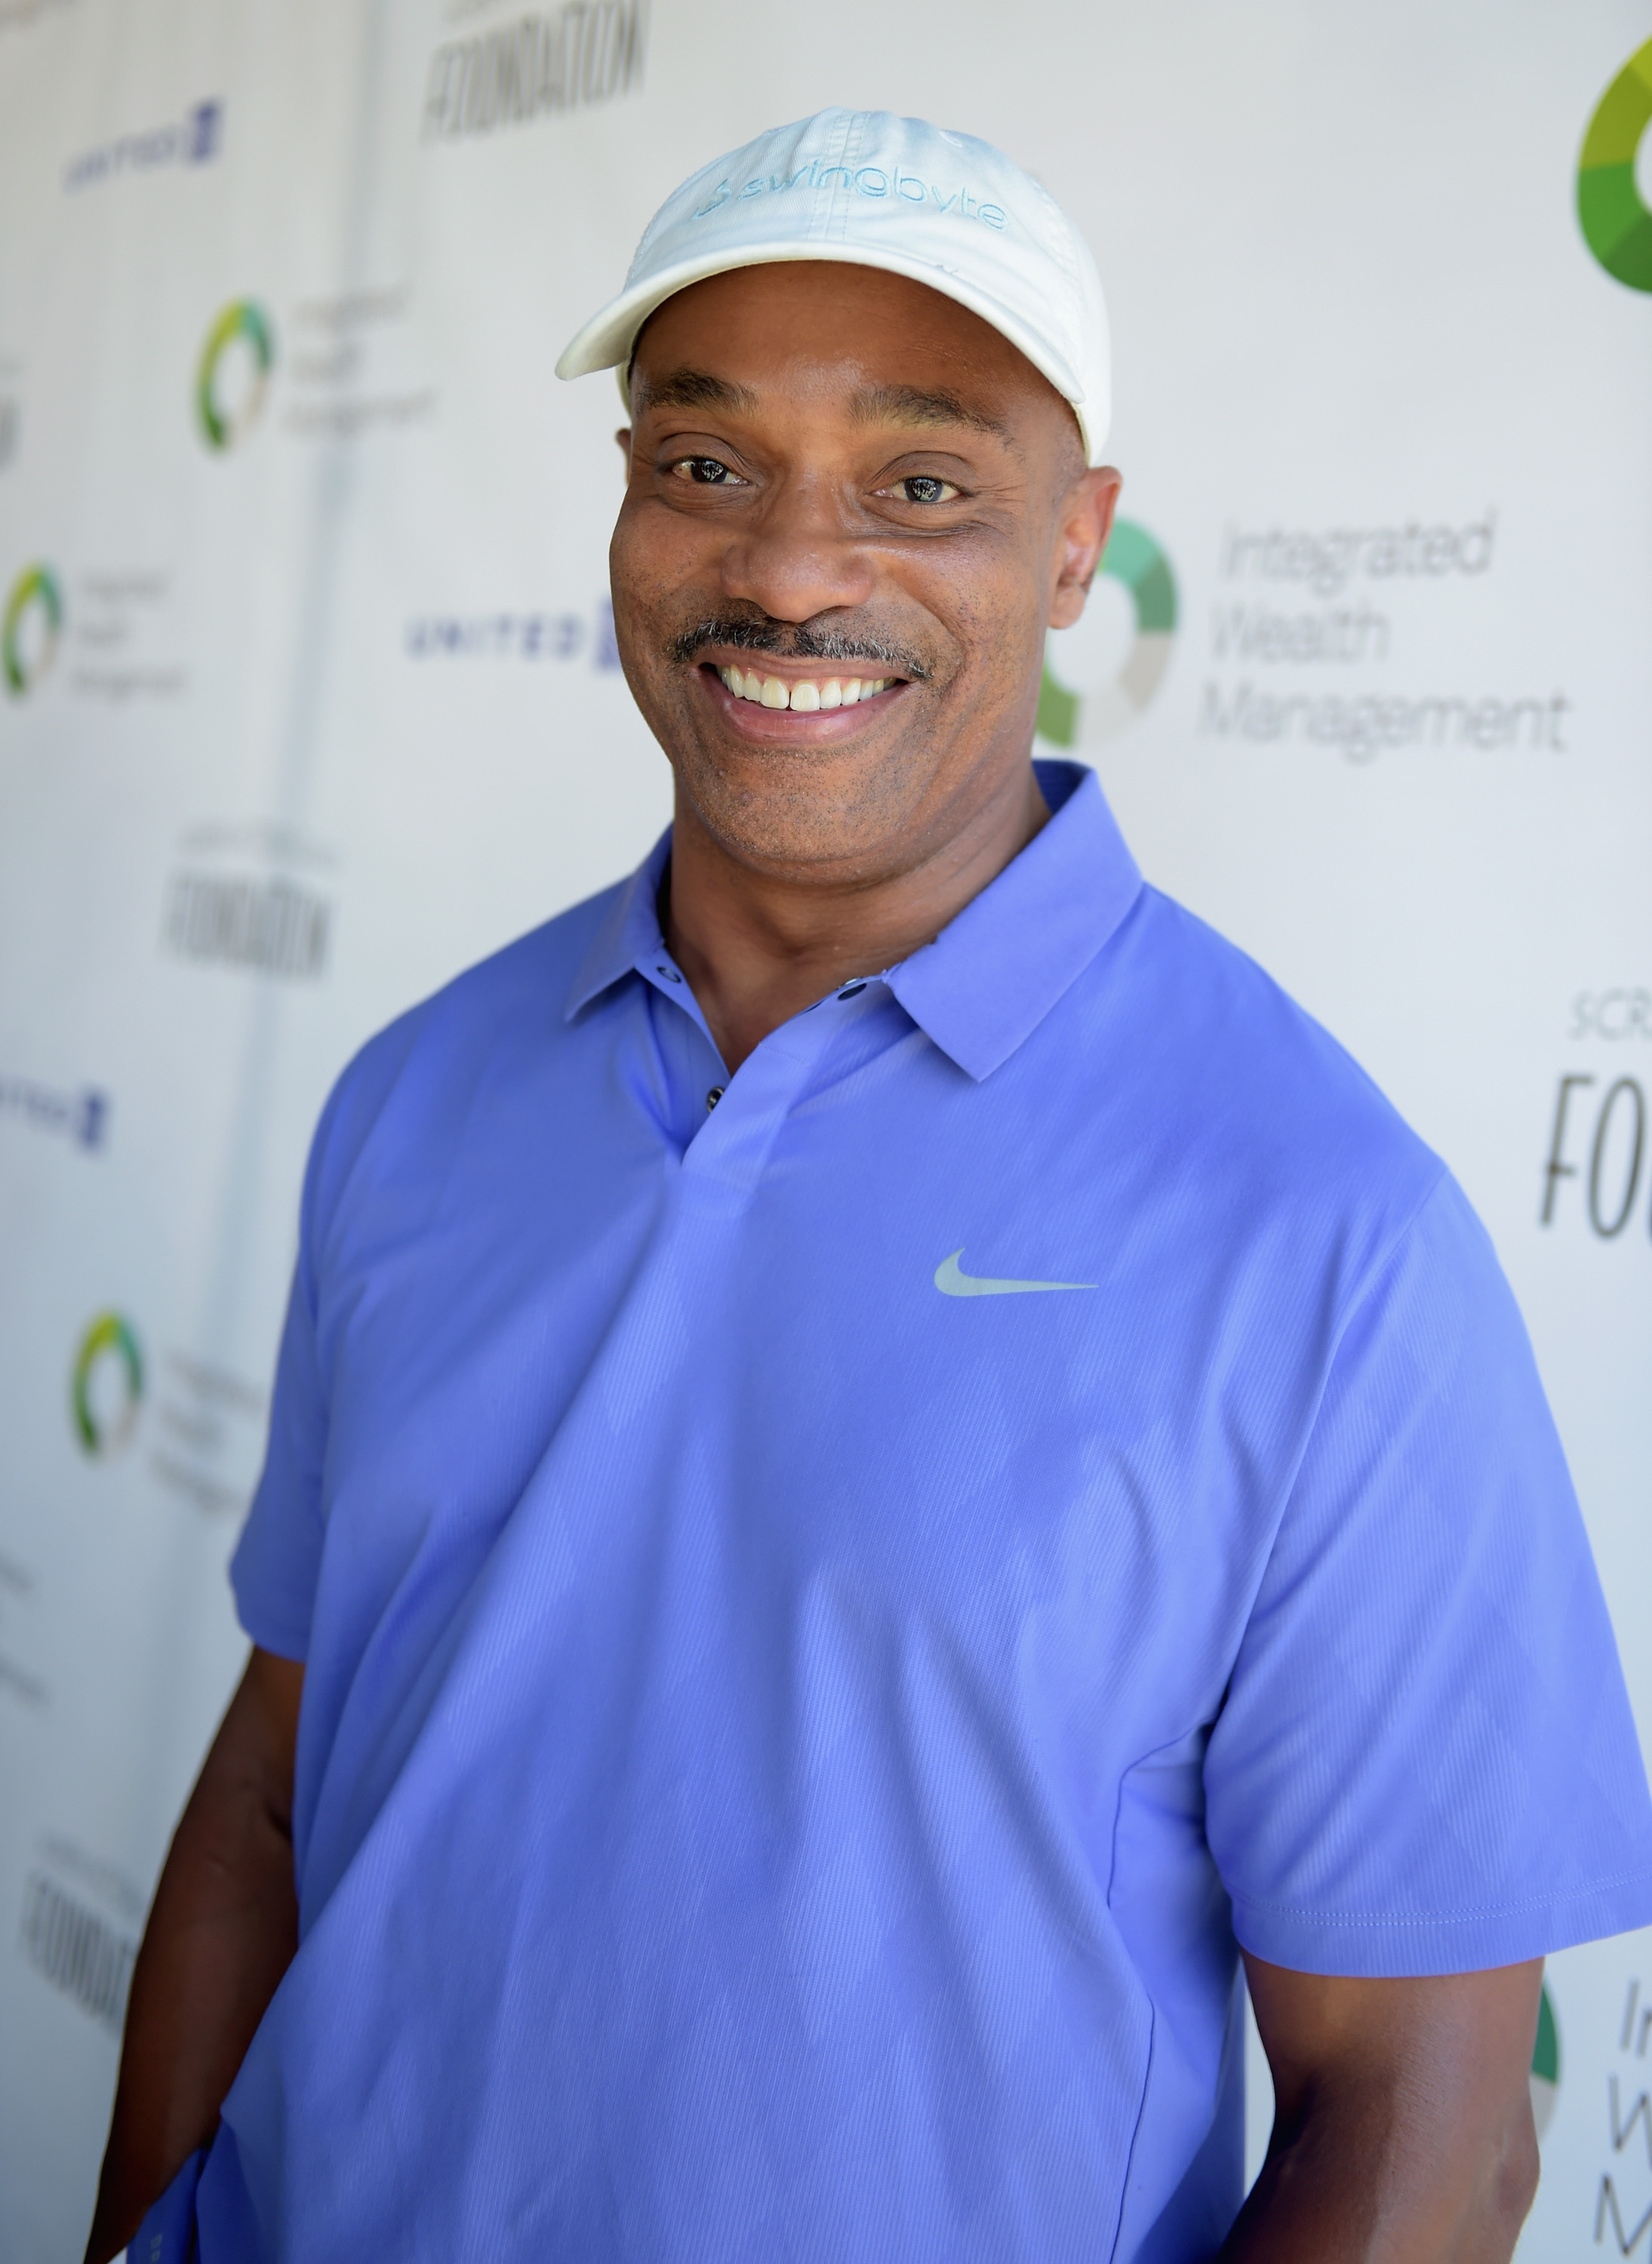 Actor Rocky Carroll attends The Screen Actors Guild Foundation's 6th Annual Los Angeles Golf Classic on June 8, 2015 in Burbank, California.  (Photo by Jason Kempin/Getty Images for The Screen Actors Guild Foundation)